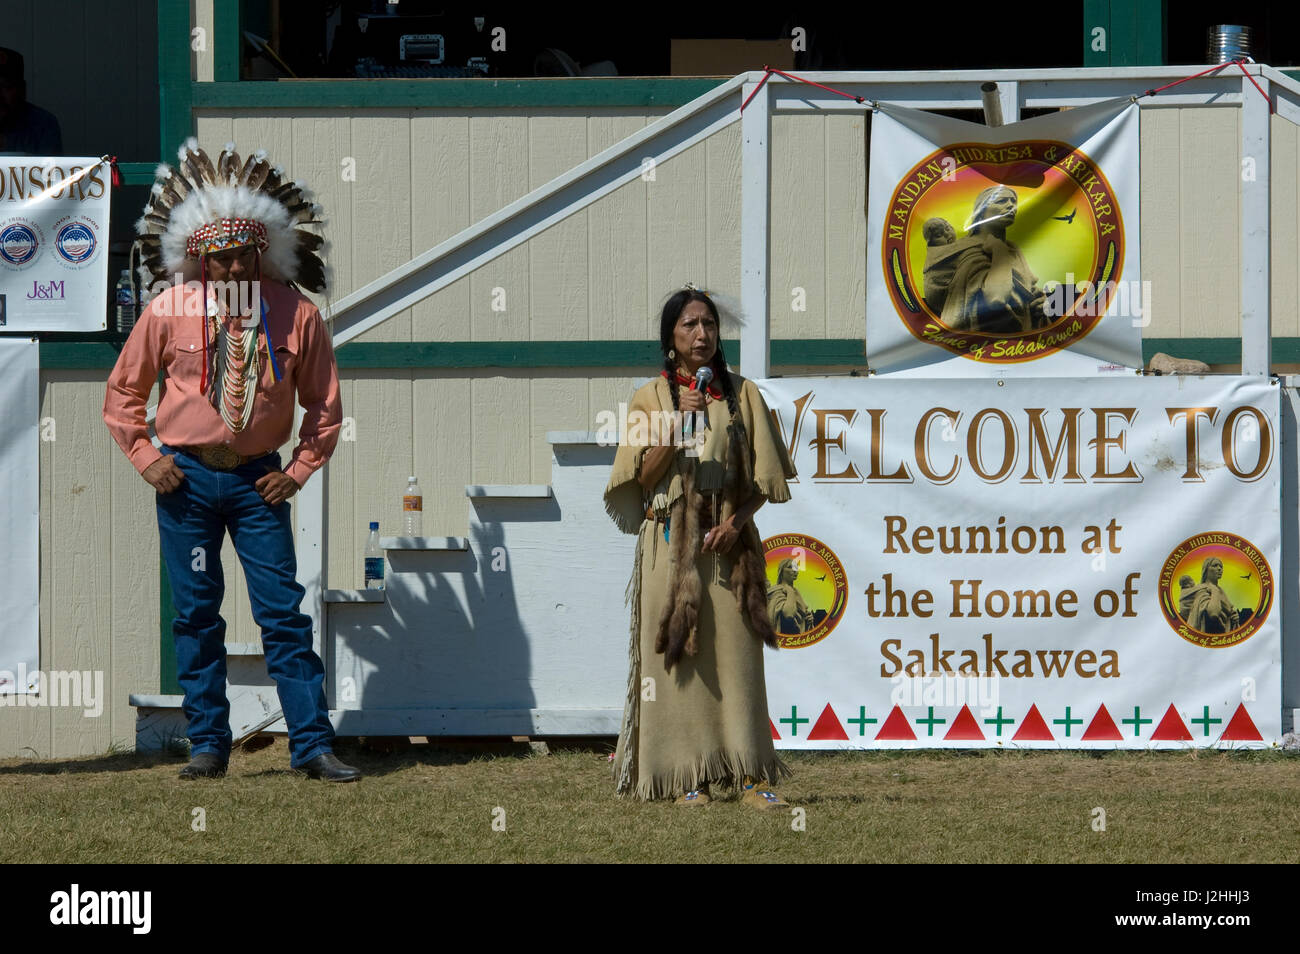 Reunion at the Home of Sakakawea Festival celebrated the Lewis and Clark Trail Bi-Centennial with Chief Tex Hall - Stock Image